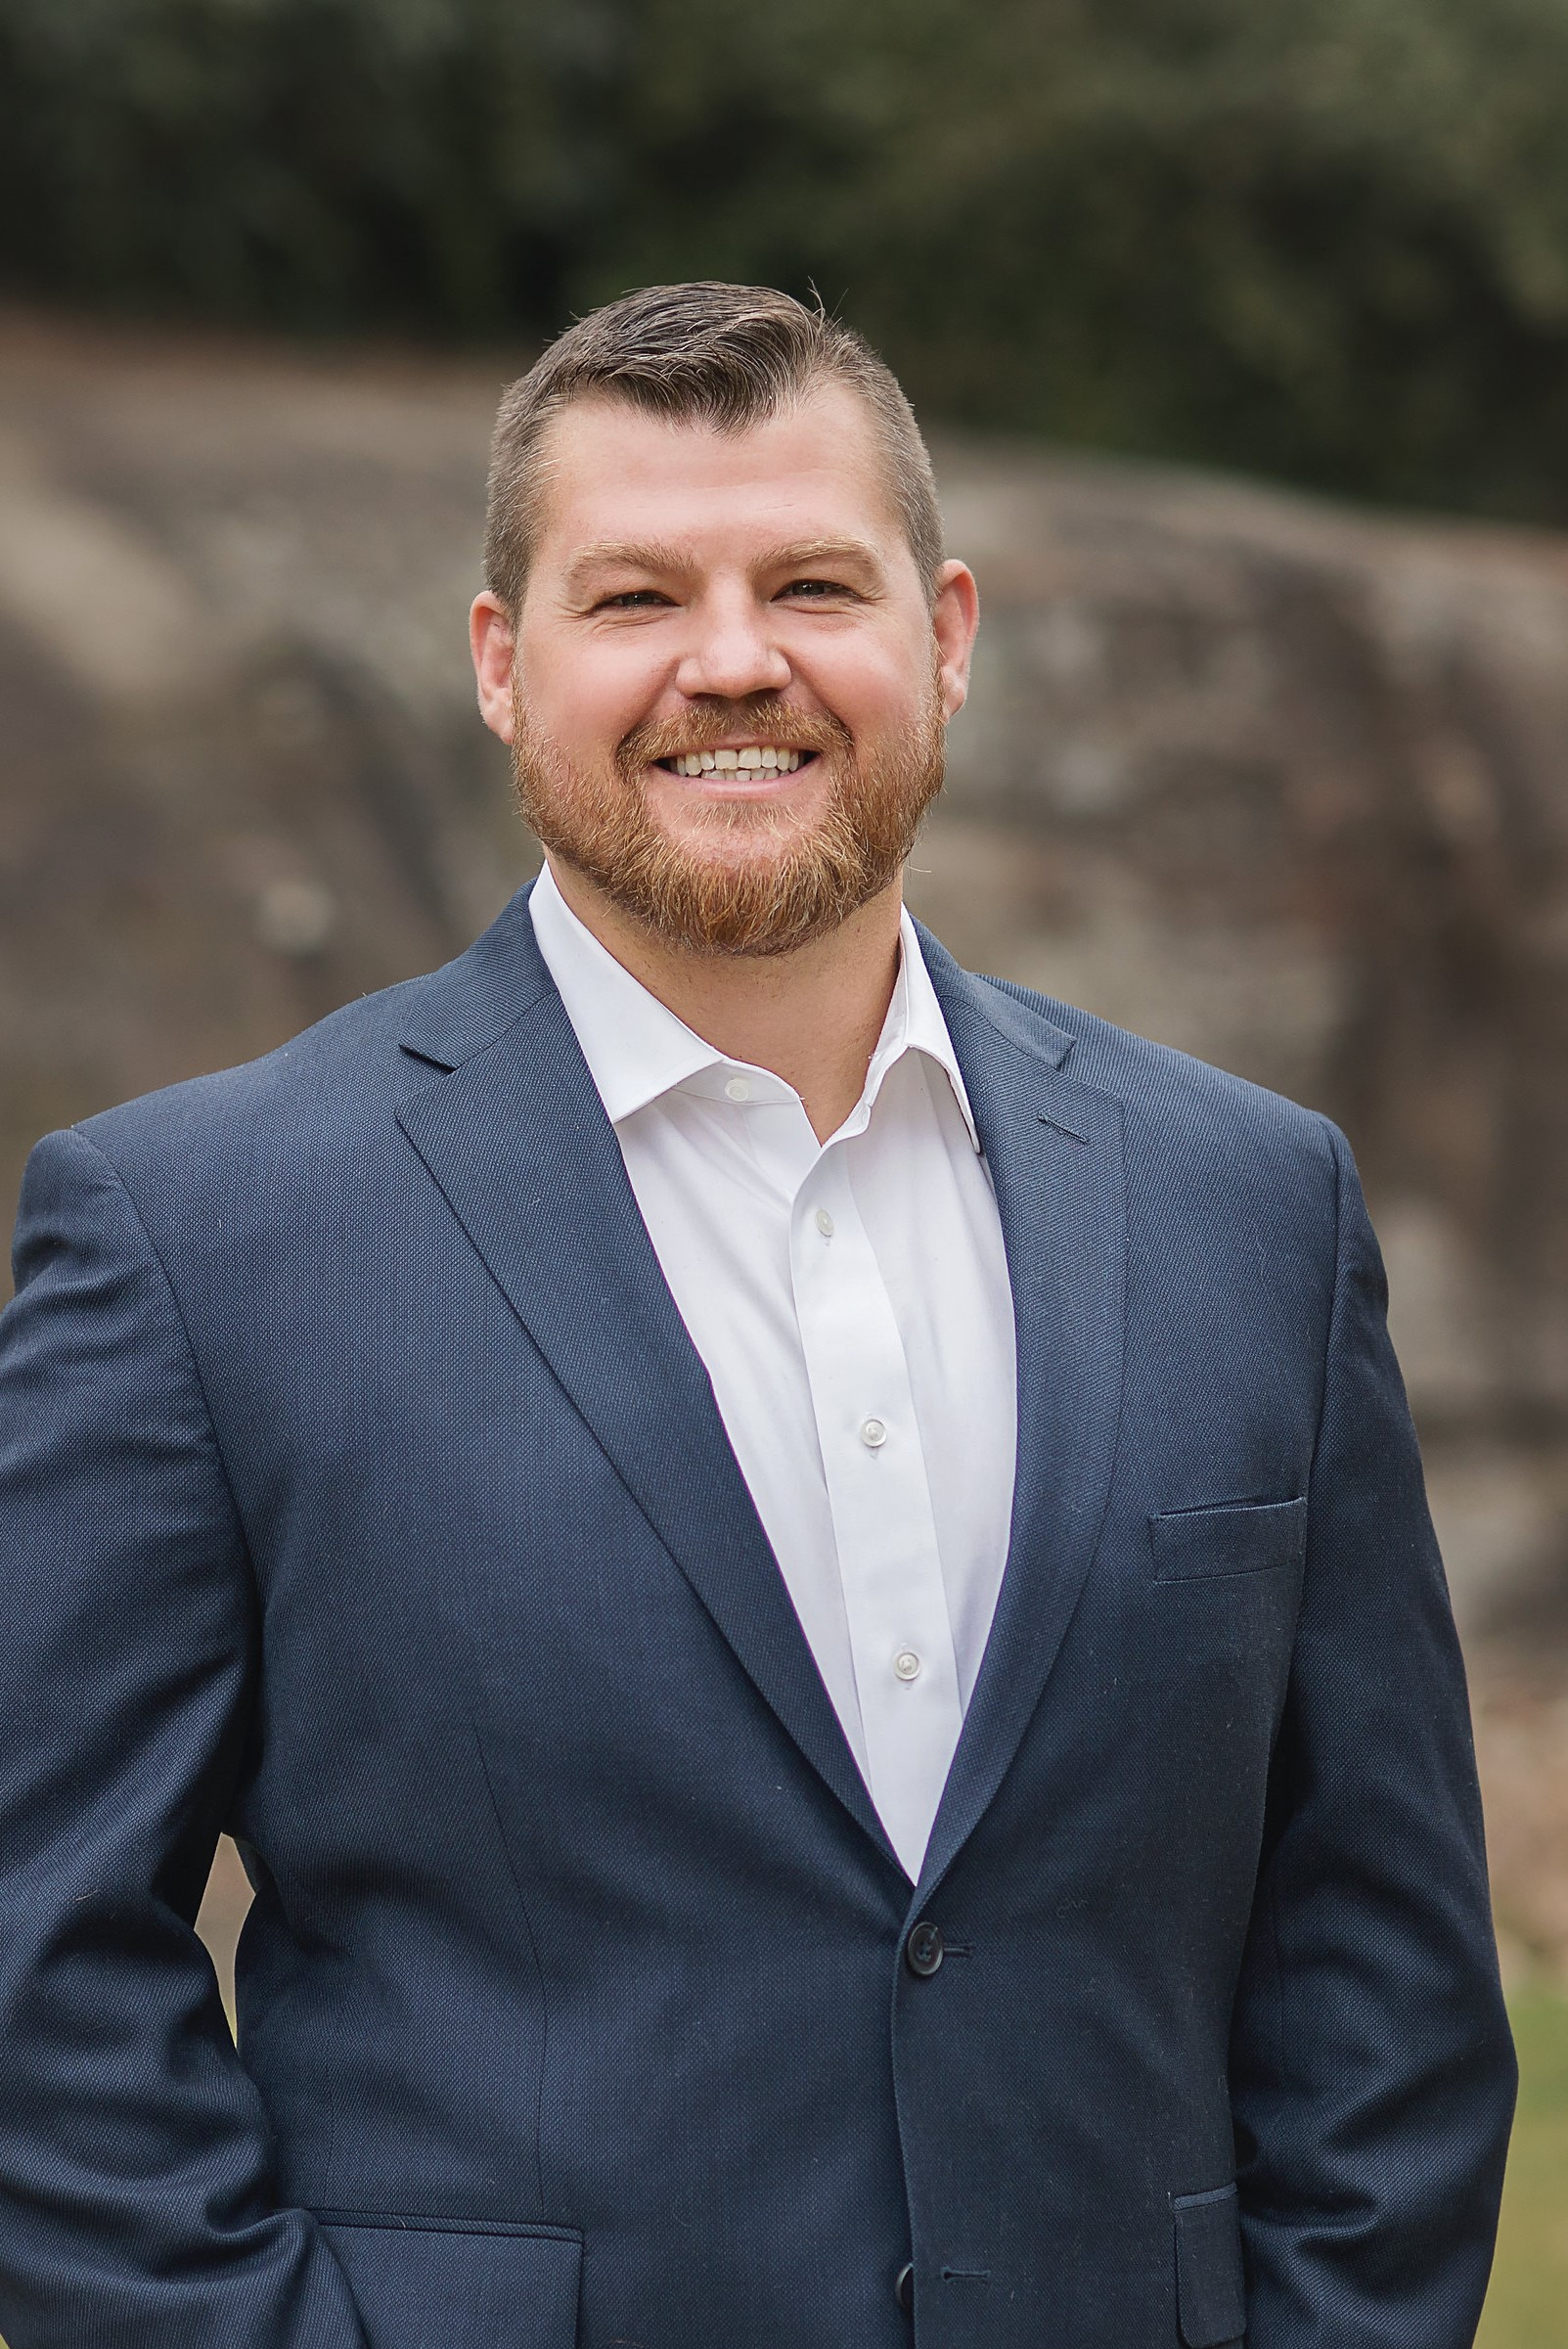 Jordan Elmquist, real estate agent for the greater Greenville, SC area